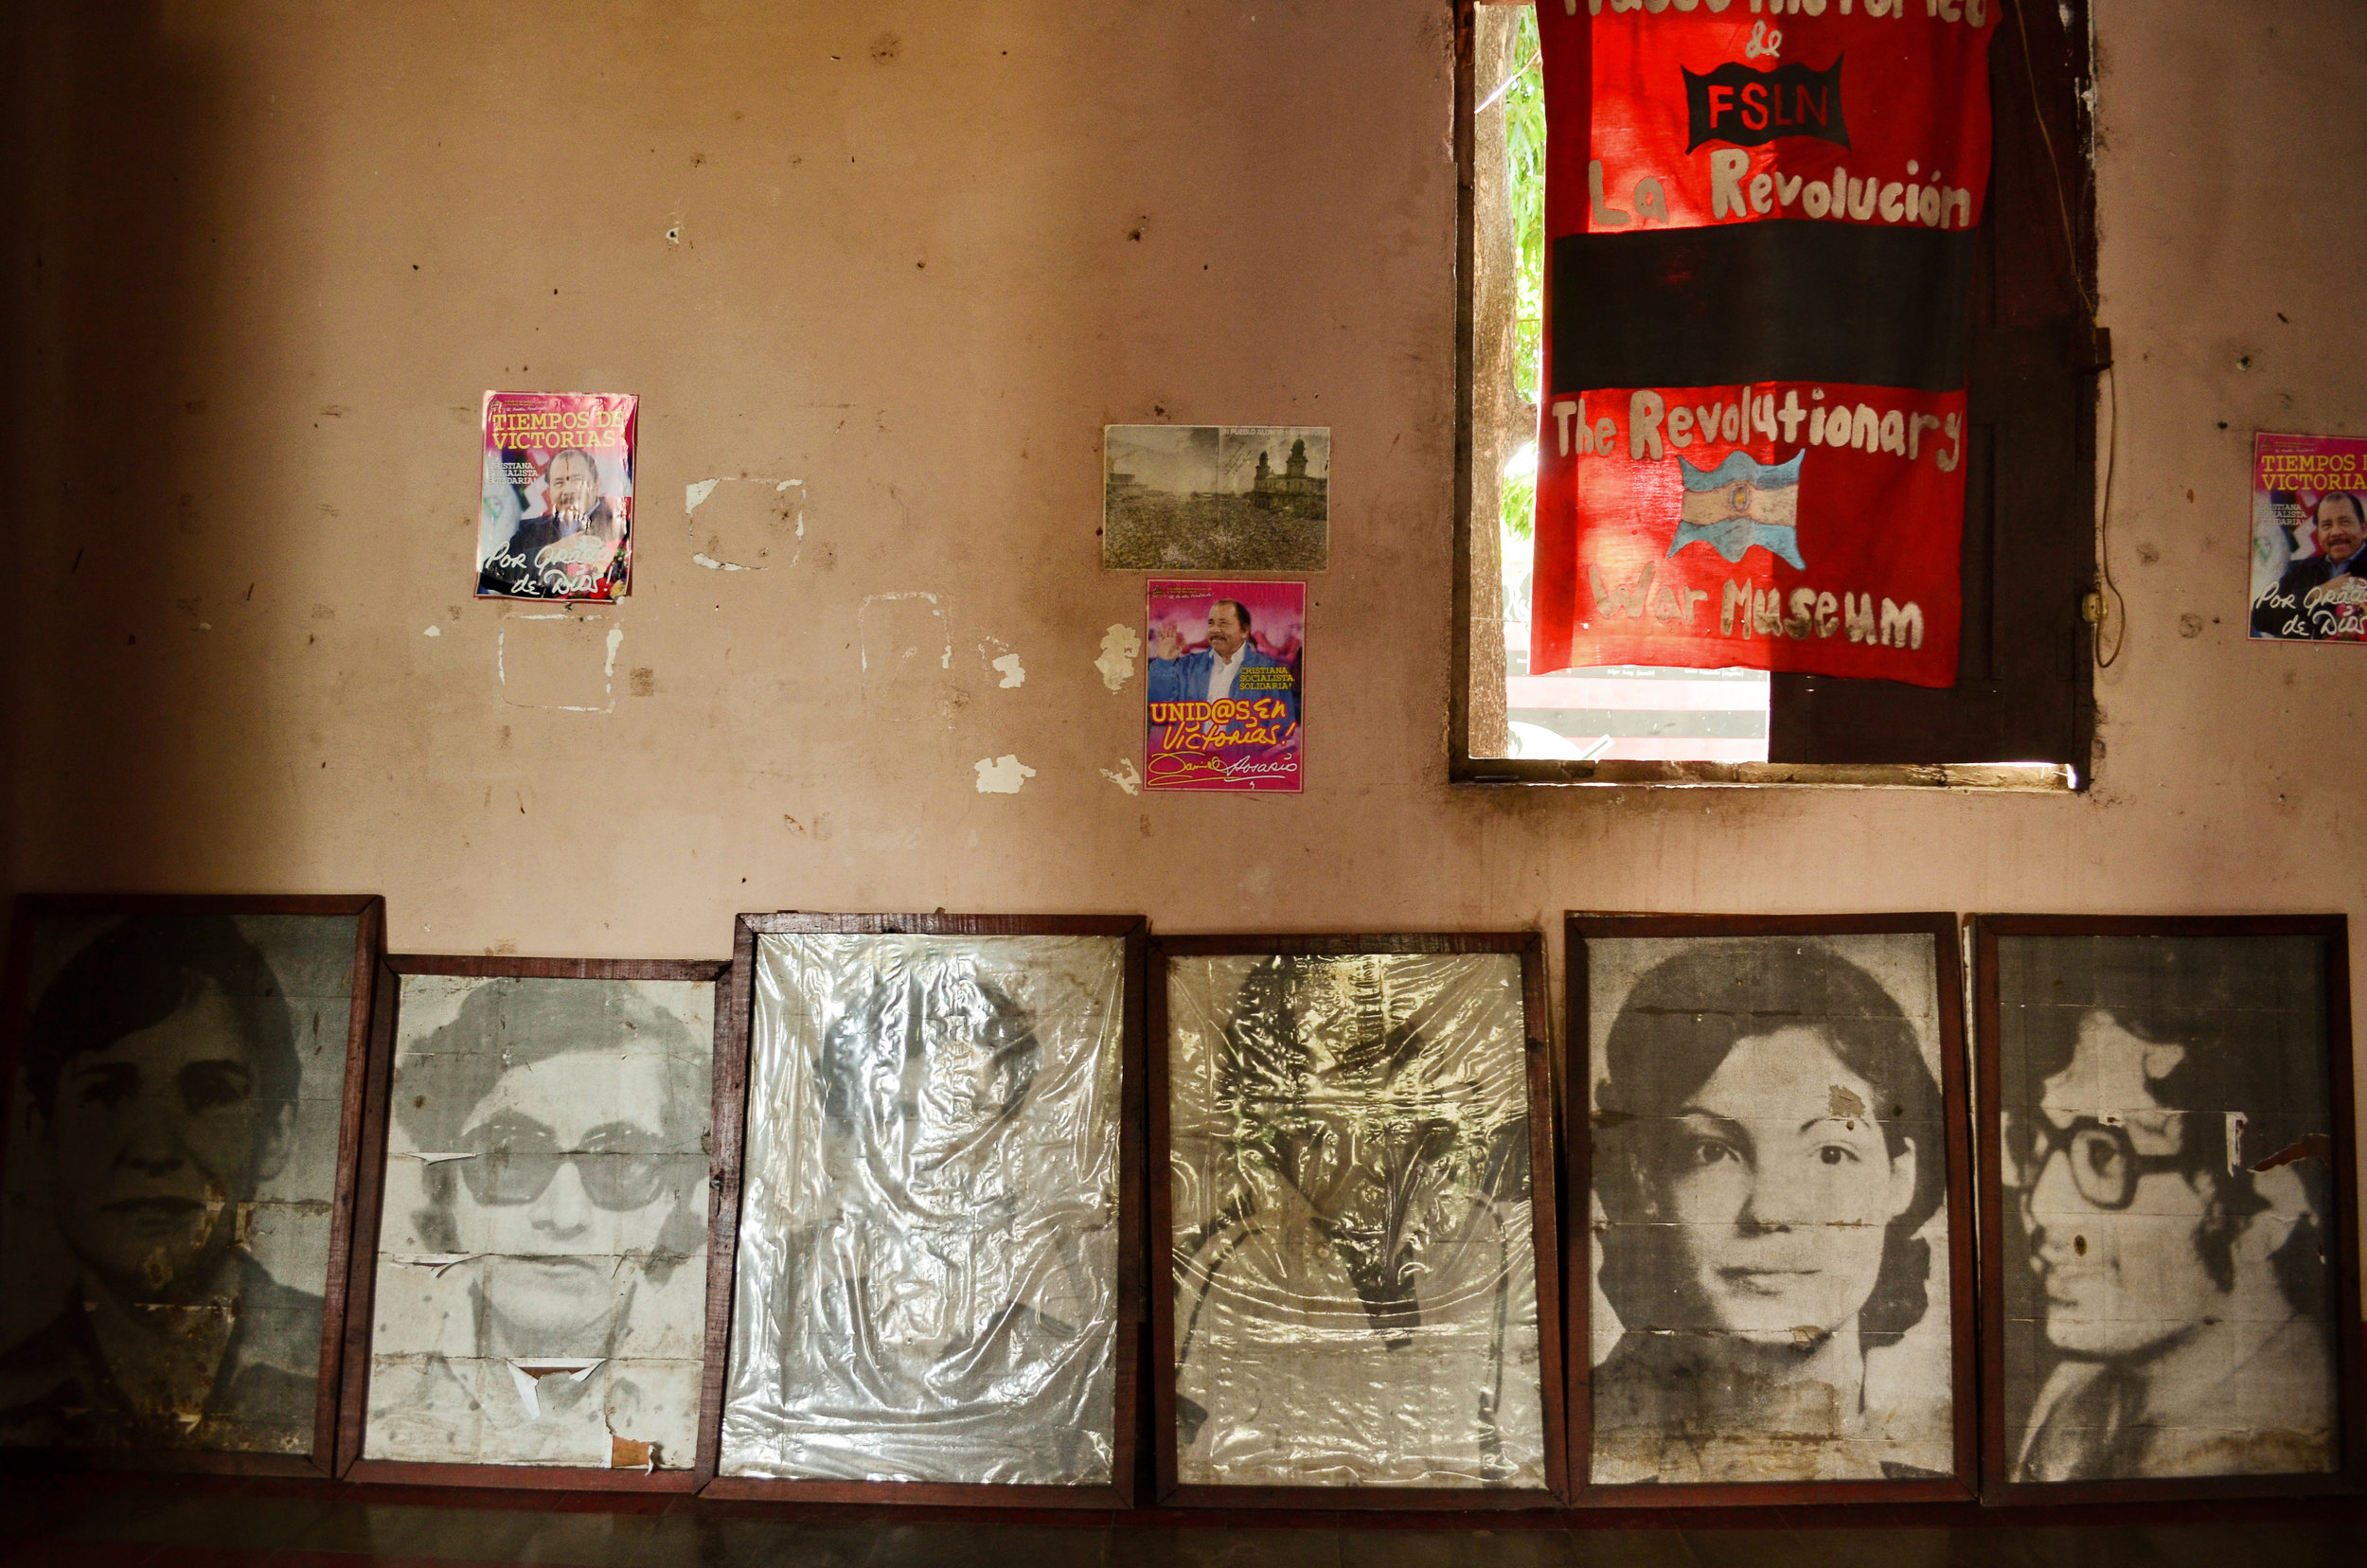 Photos of people who were killed or disappeared during the revolution are on display in the Museum of the Revolution